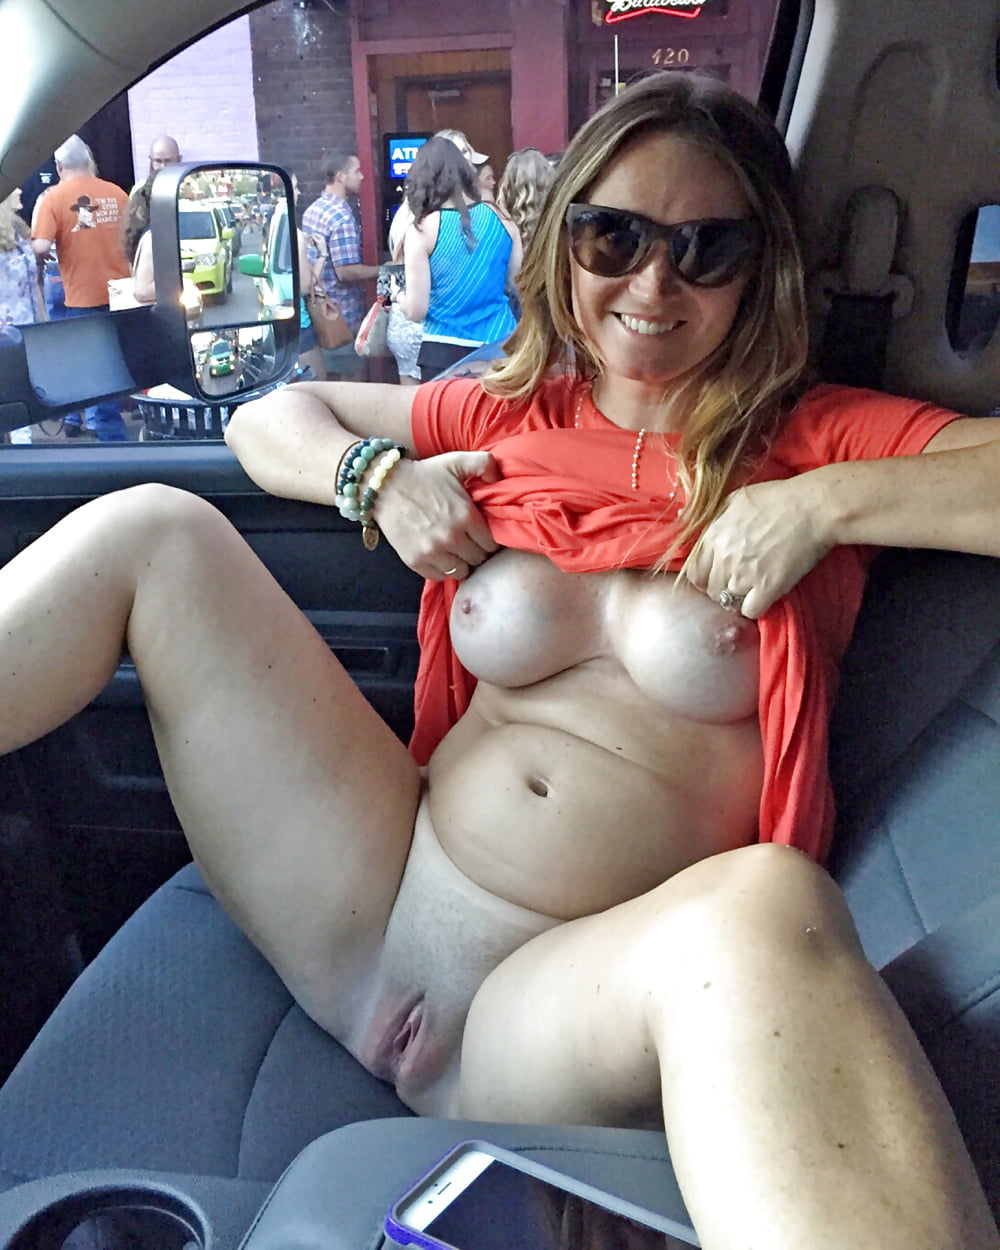 school-wife-flashing-cars-giving-blowjob